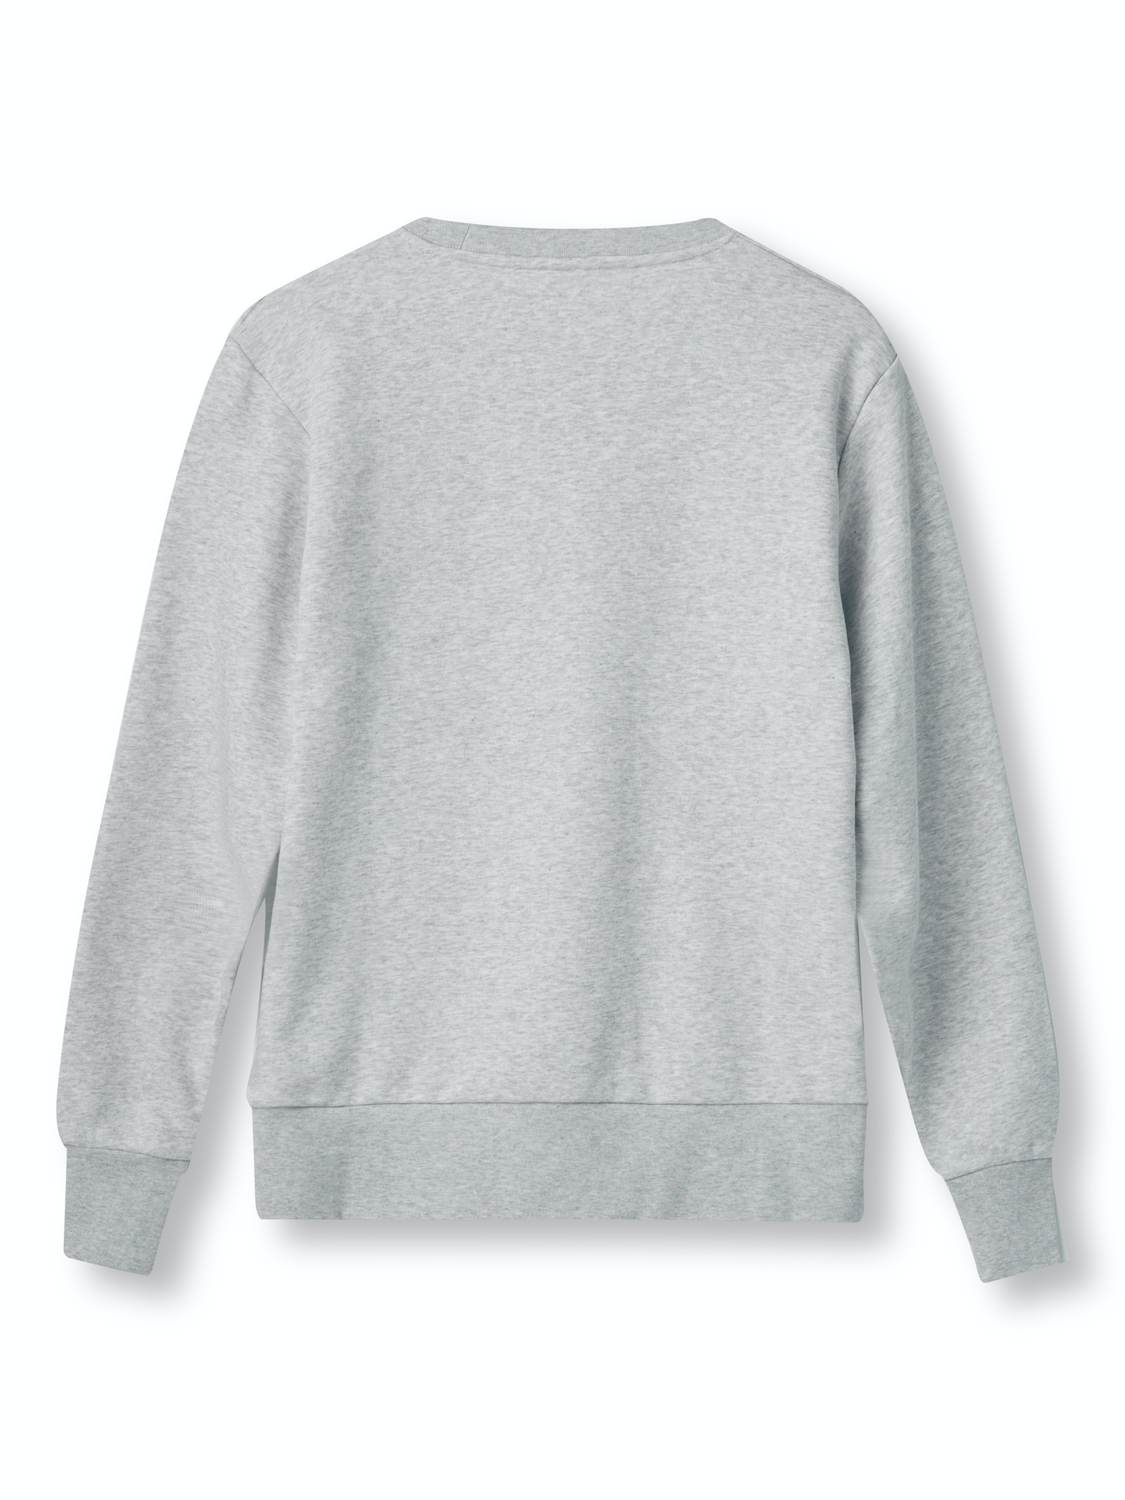 H2O sweat - Base Sweat O-neck Grey | GATE 36 HobroH2O sweat - Base Sweat O-neck Grey | GATE 36 Hobro